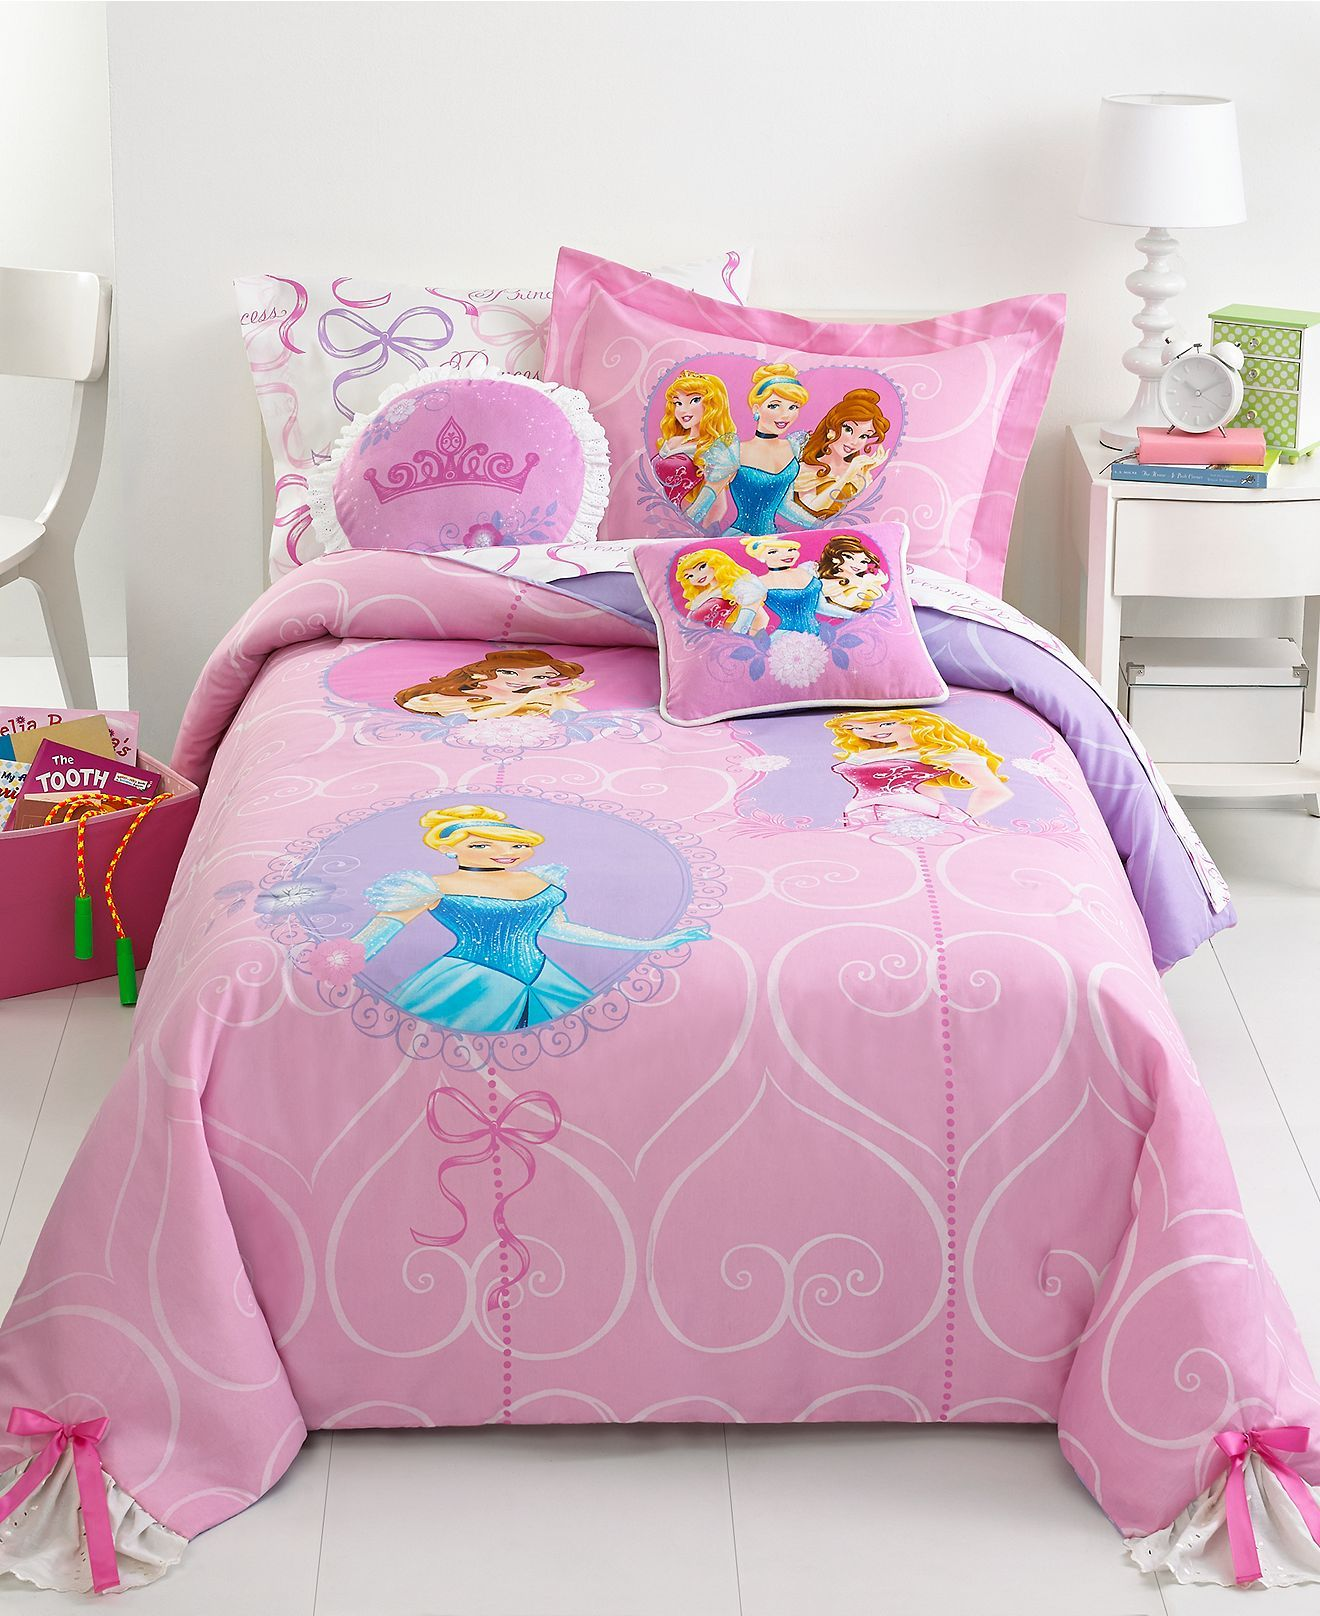 disney princess timeless elegance twin comforter set - bed in a